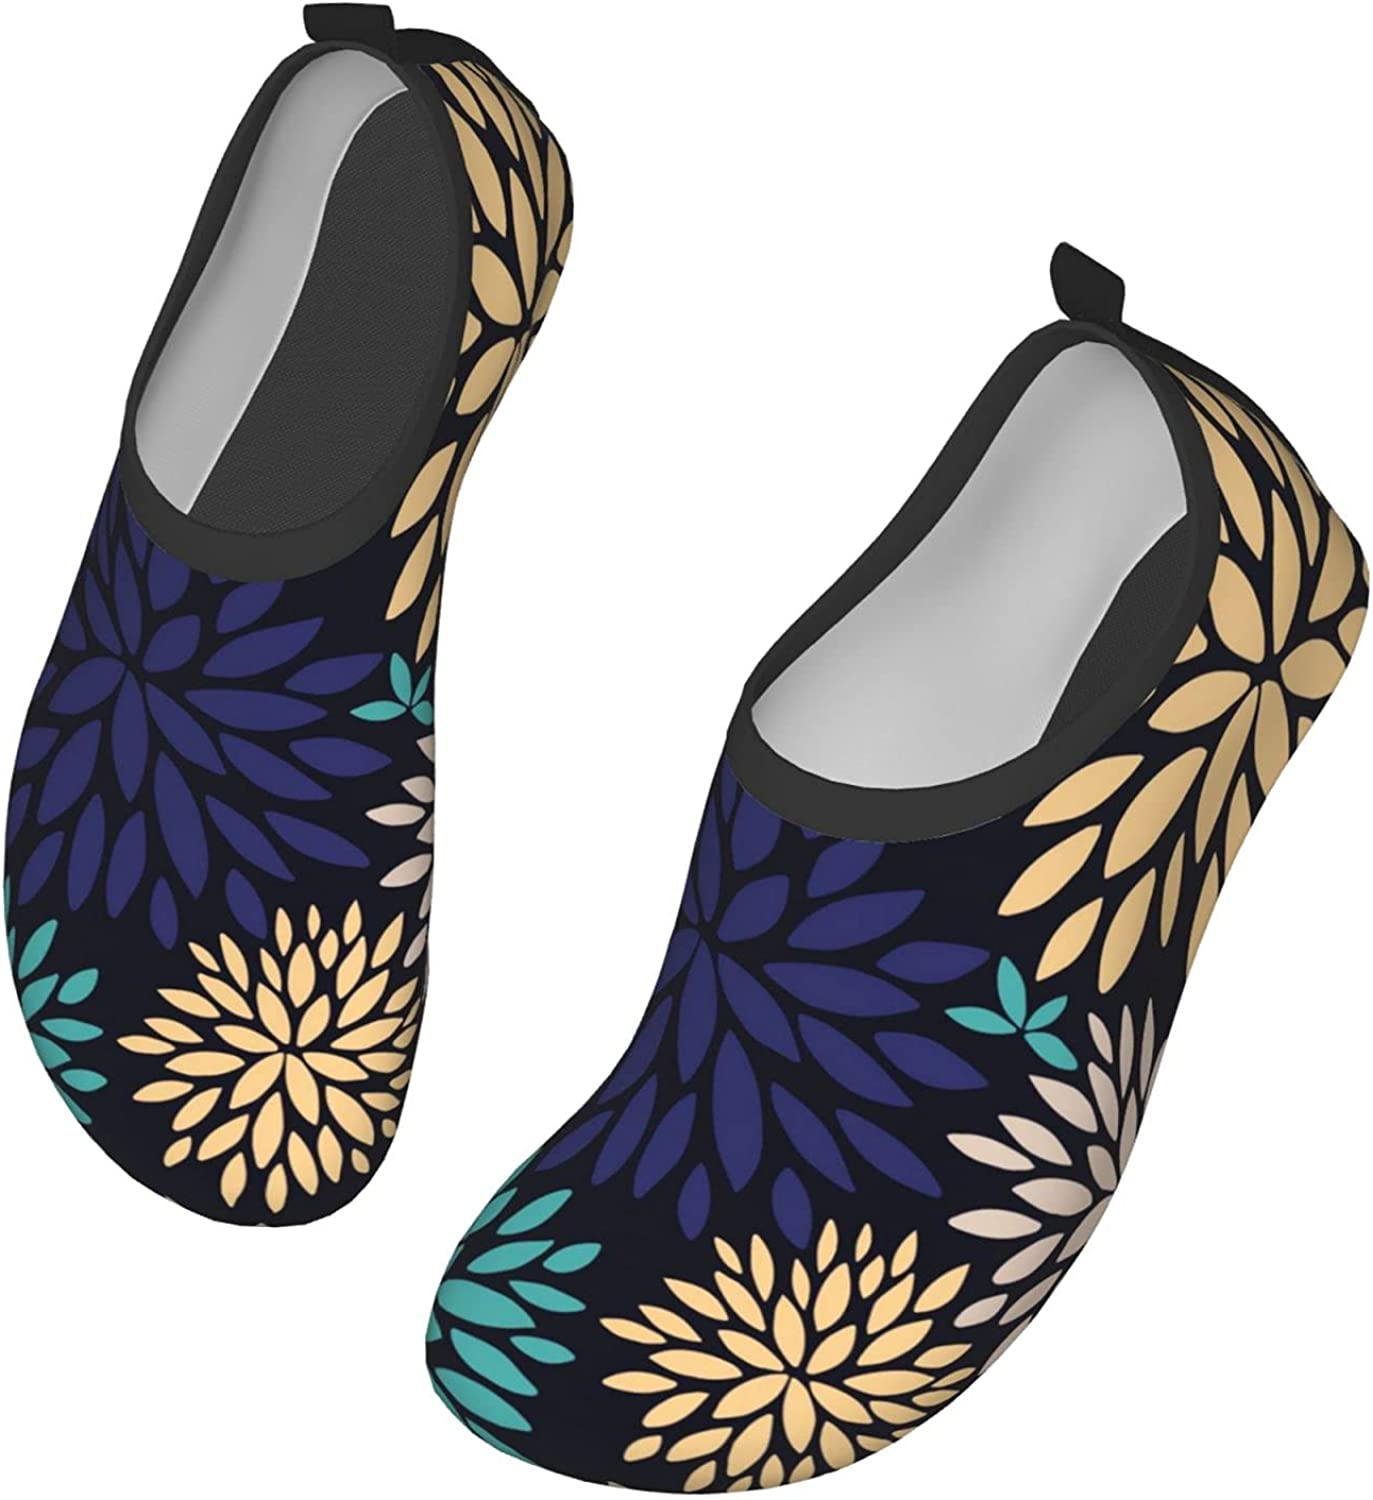 DISGOWONG Bright Color Pattern Flowers Water Shoes Outdoor Quick-Dry Aqua Yoga Socks Beach Pool Shoes Beach Swim Sports for Women and Men 15 inch